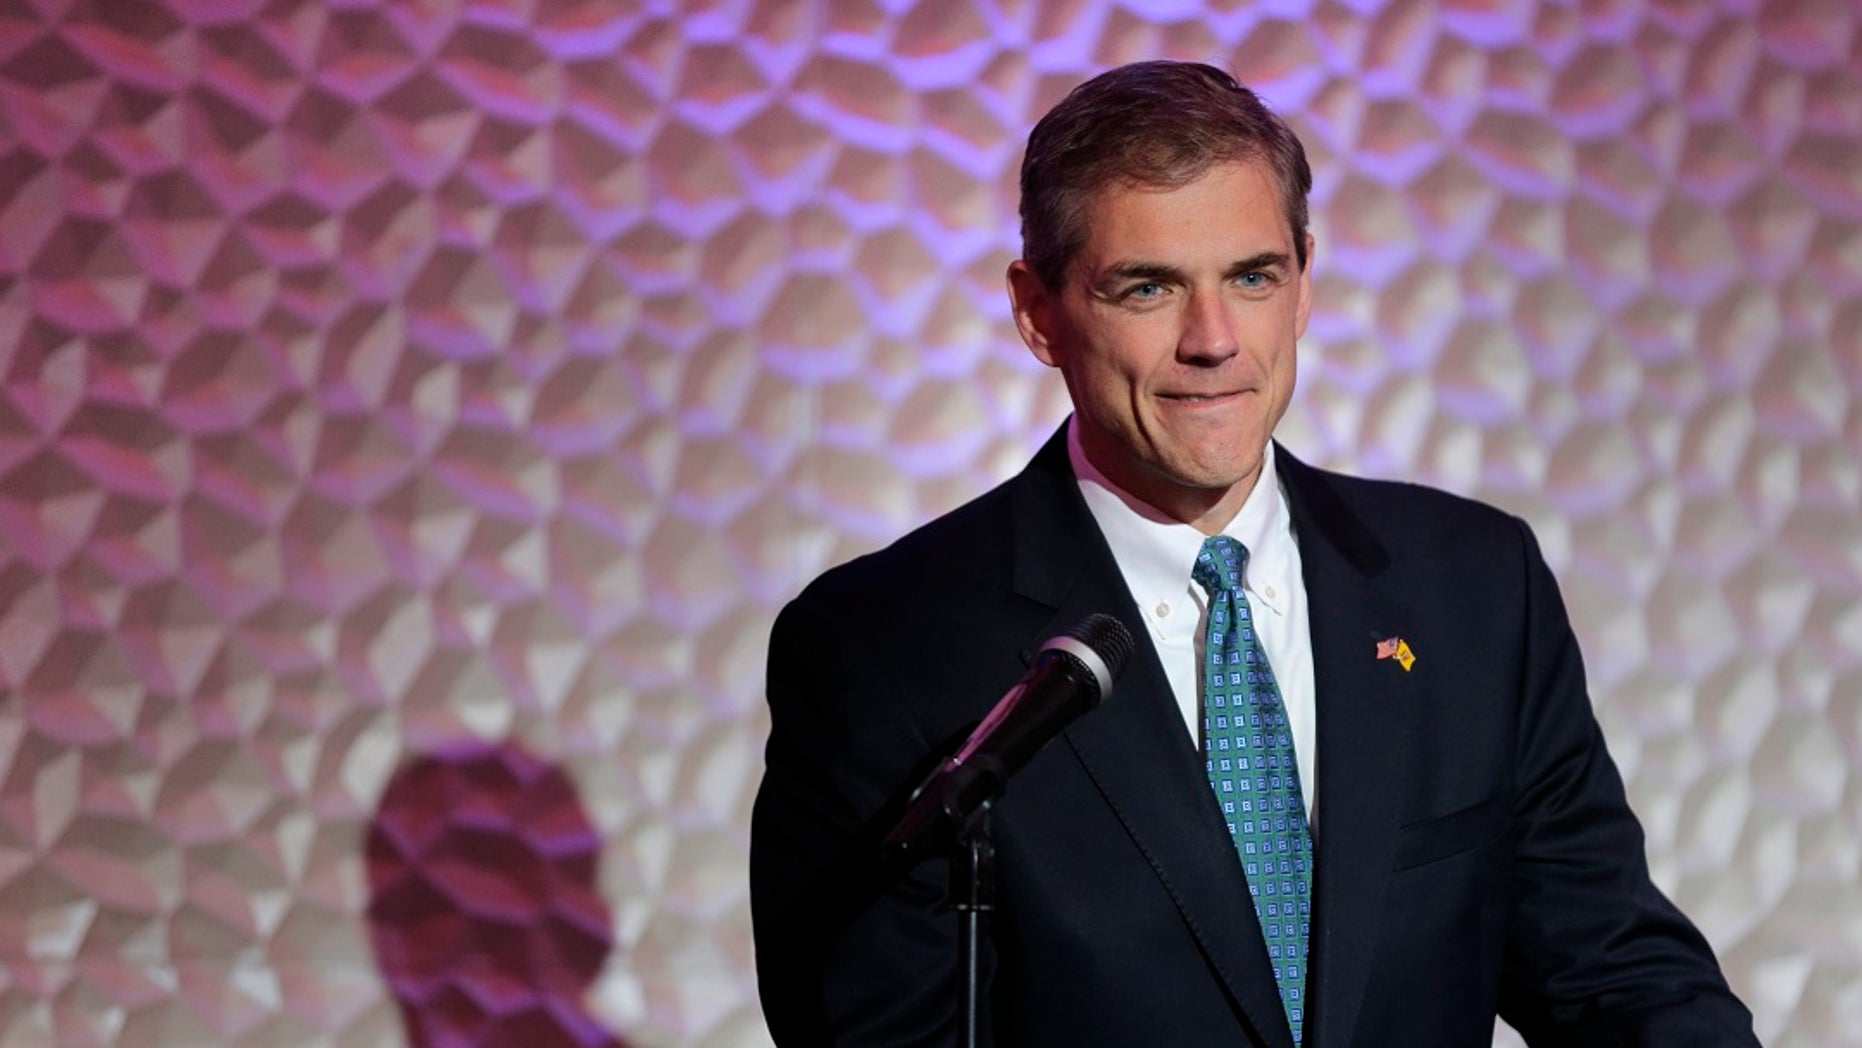 Republican congressional candidate Jay Webber speaks at a reception in Wayne, N.J.